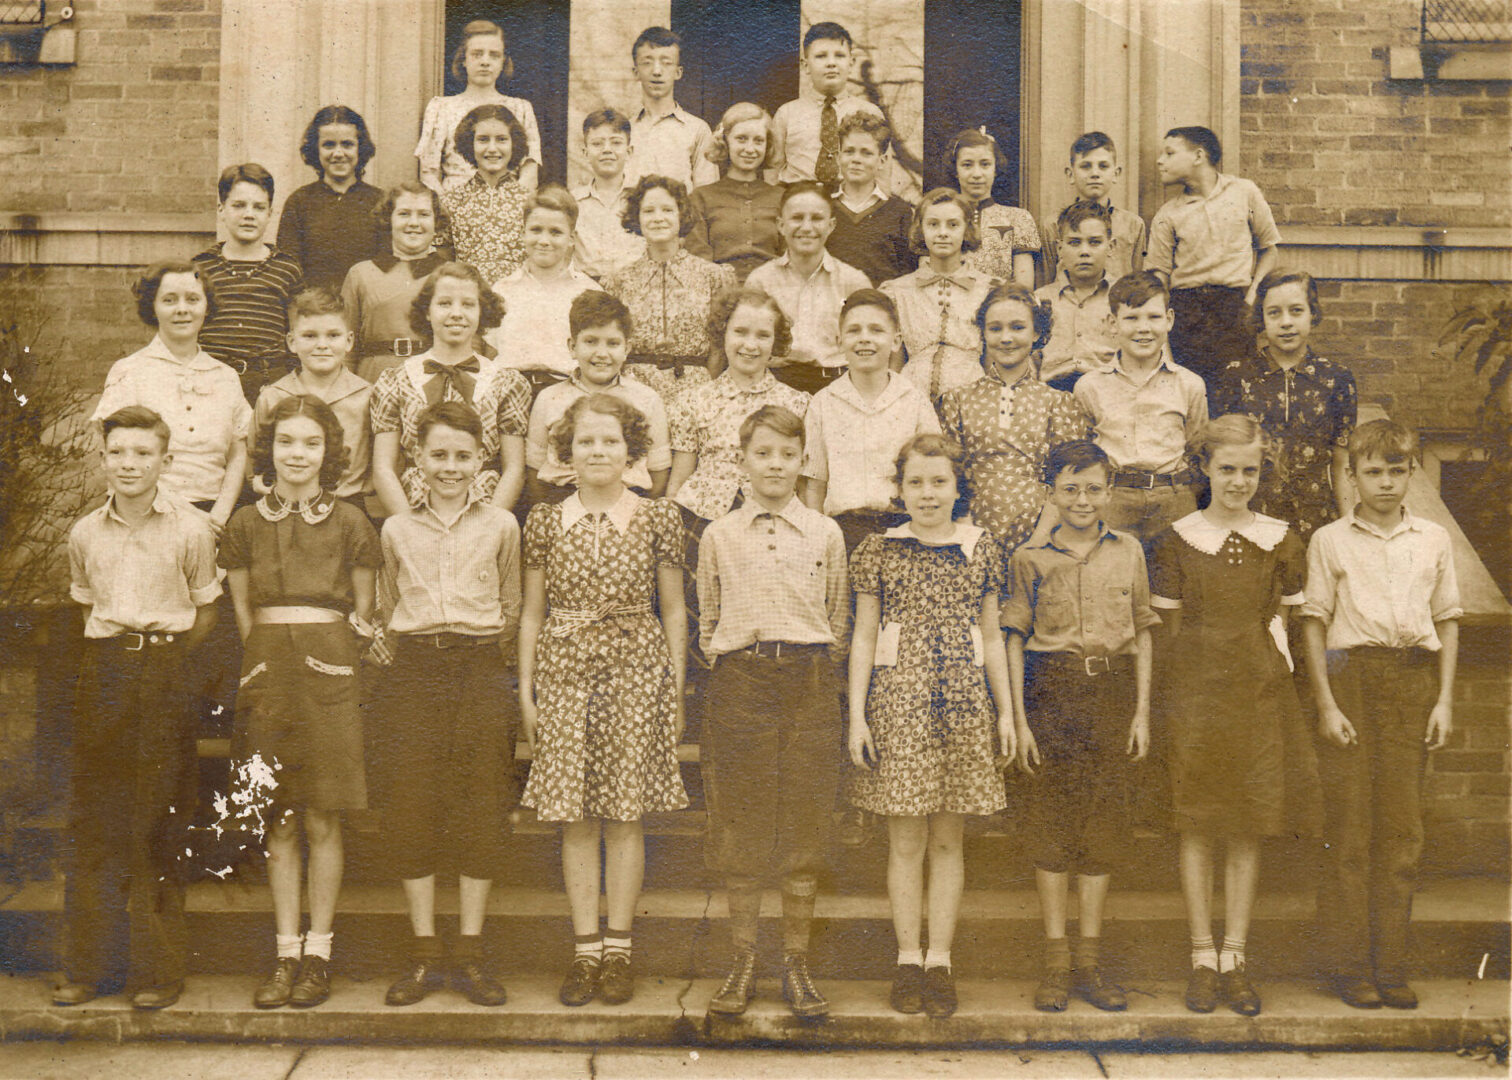 Bernice Jones School Class estimated 1935-1938.  Bernice (daughter of Chester Jones) is the girl in the center of the third row.